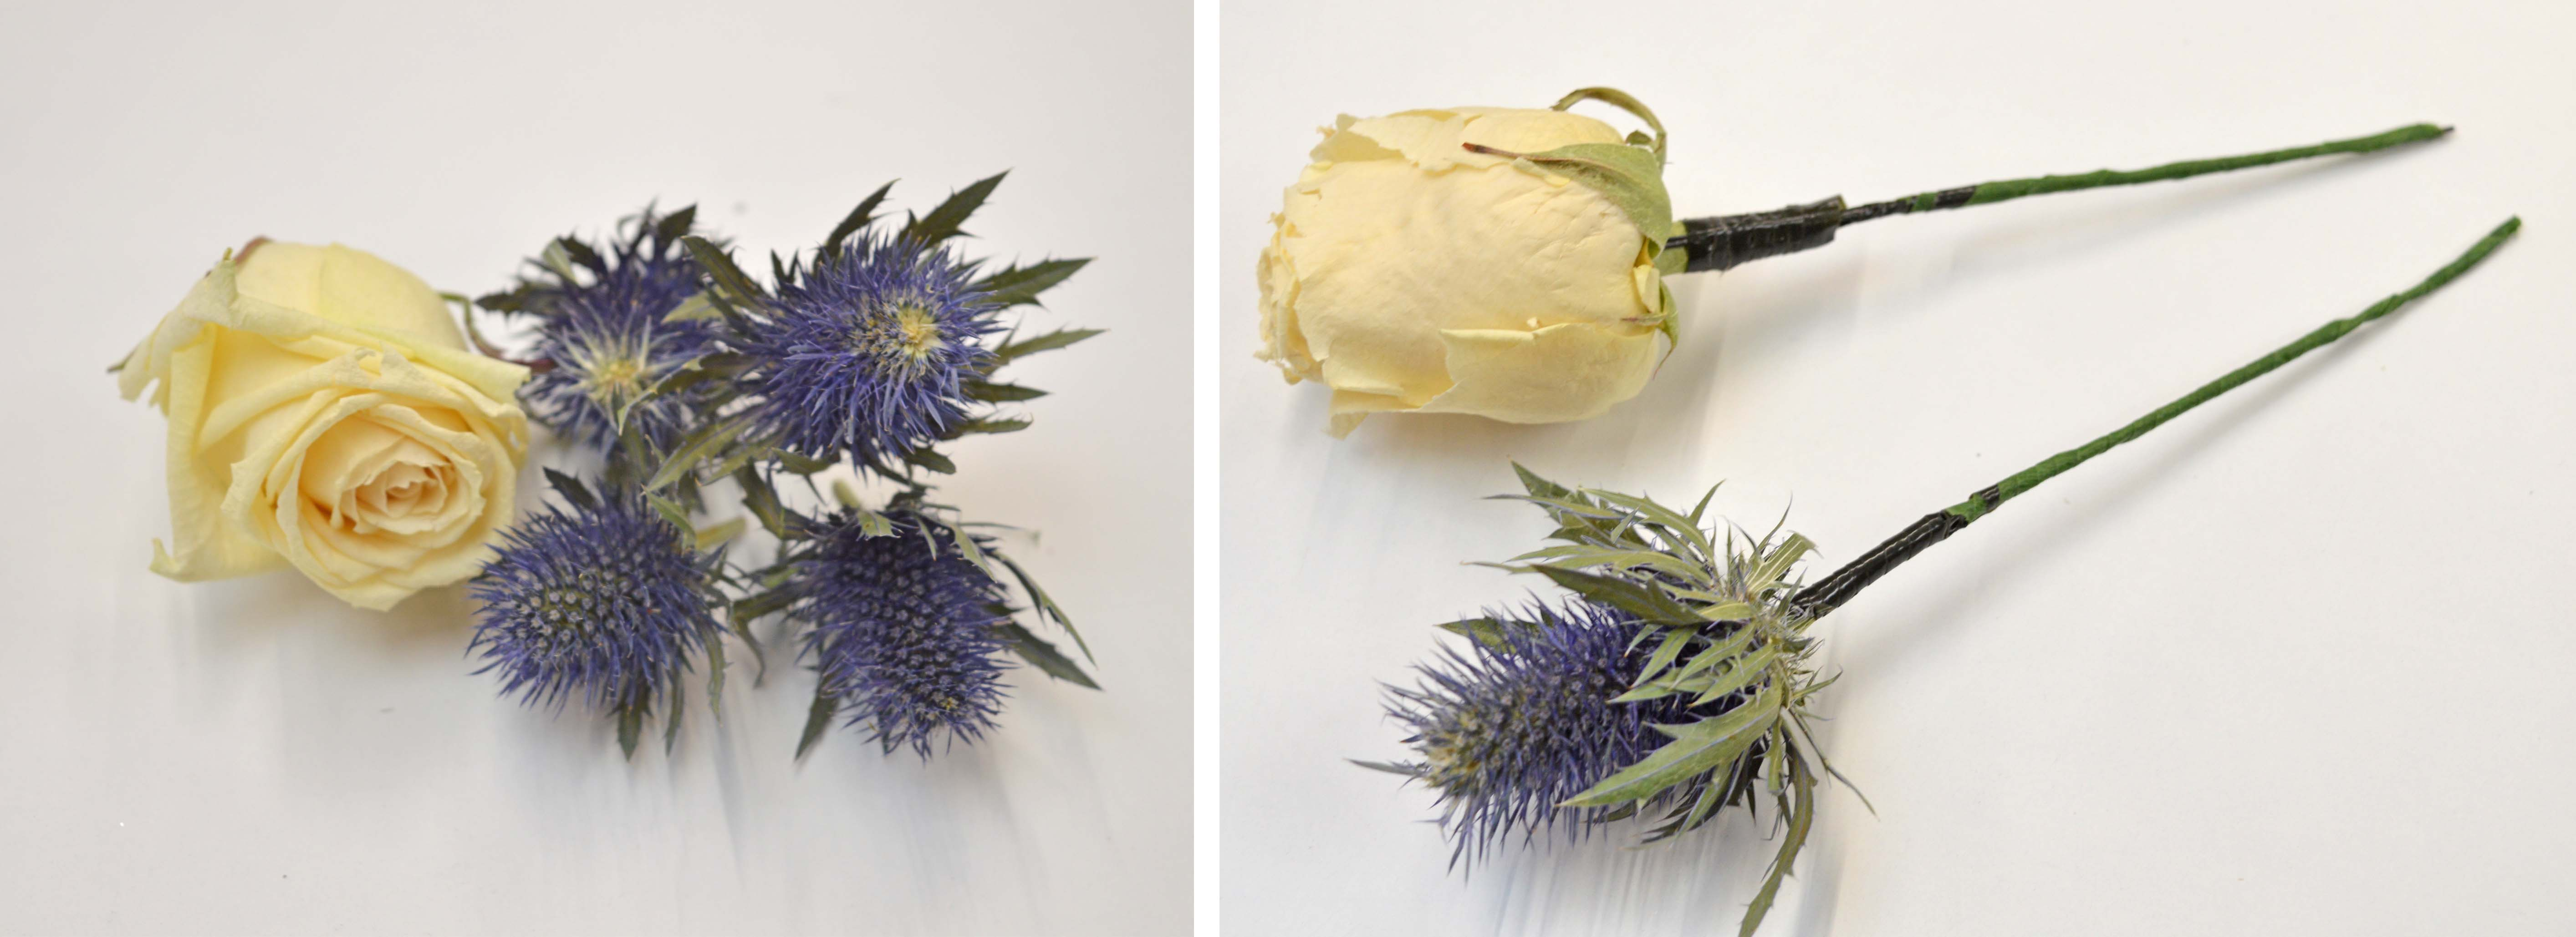 rose_heads_and_thistle_heads